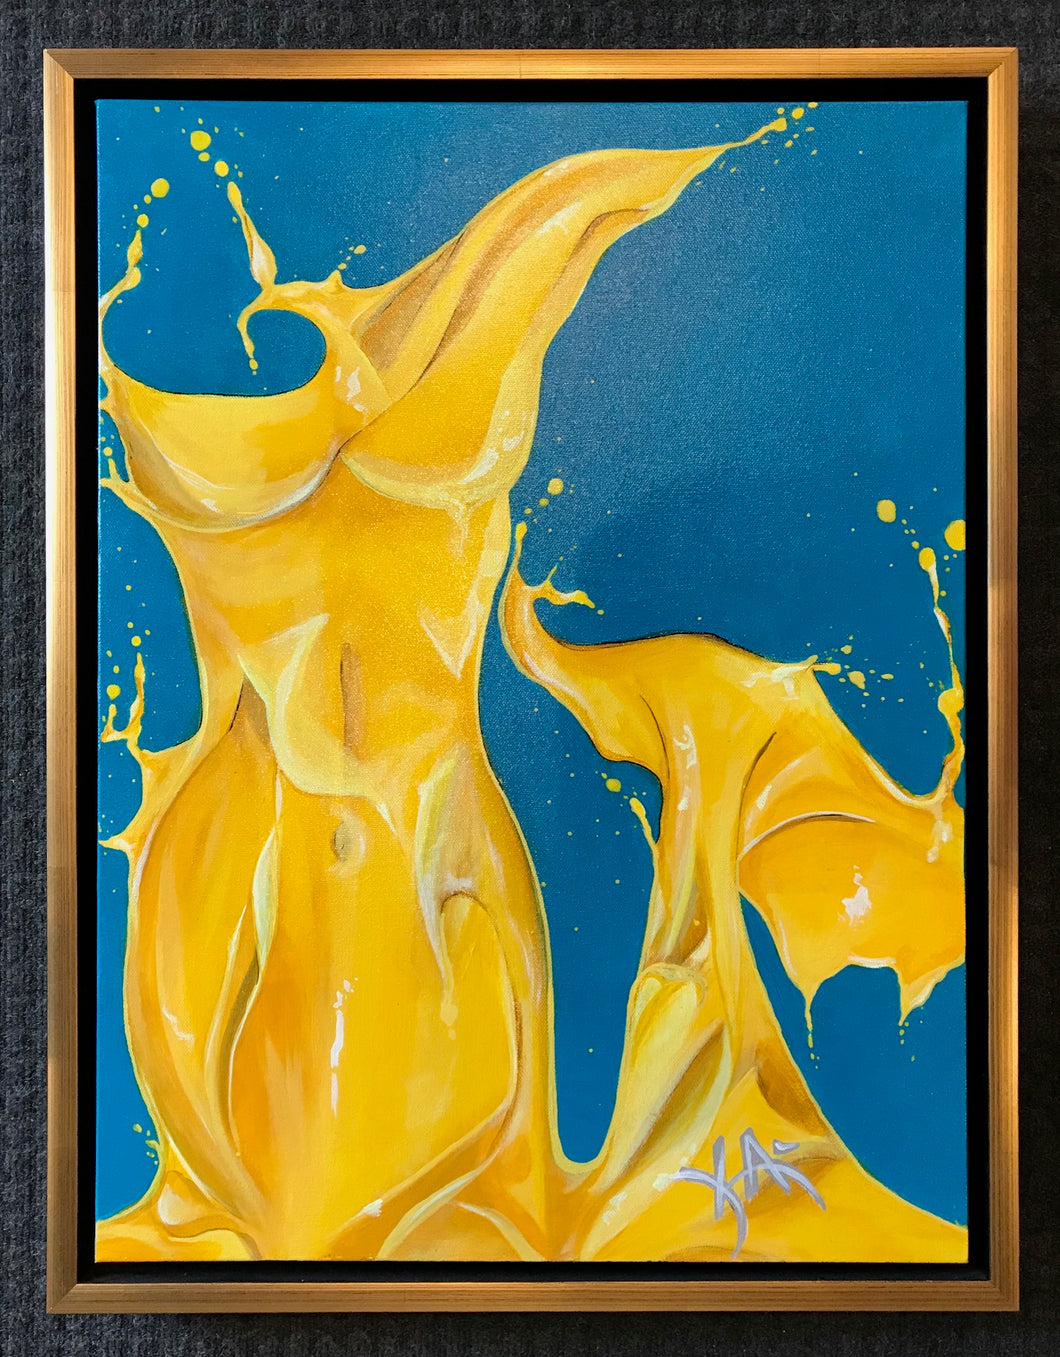 LIQUID GOLD MERMAID (2018)